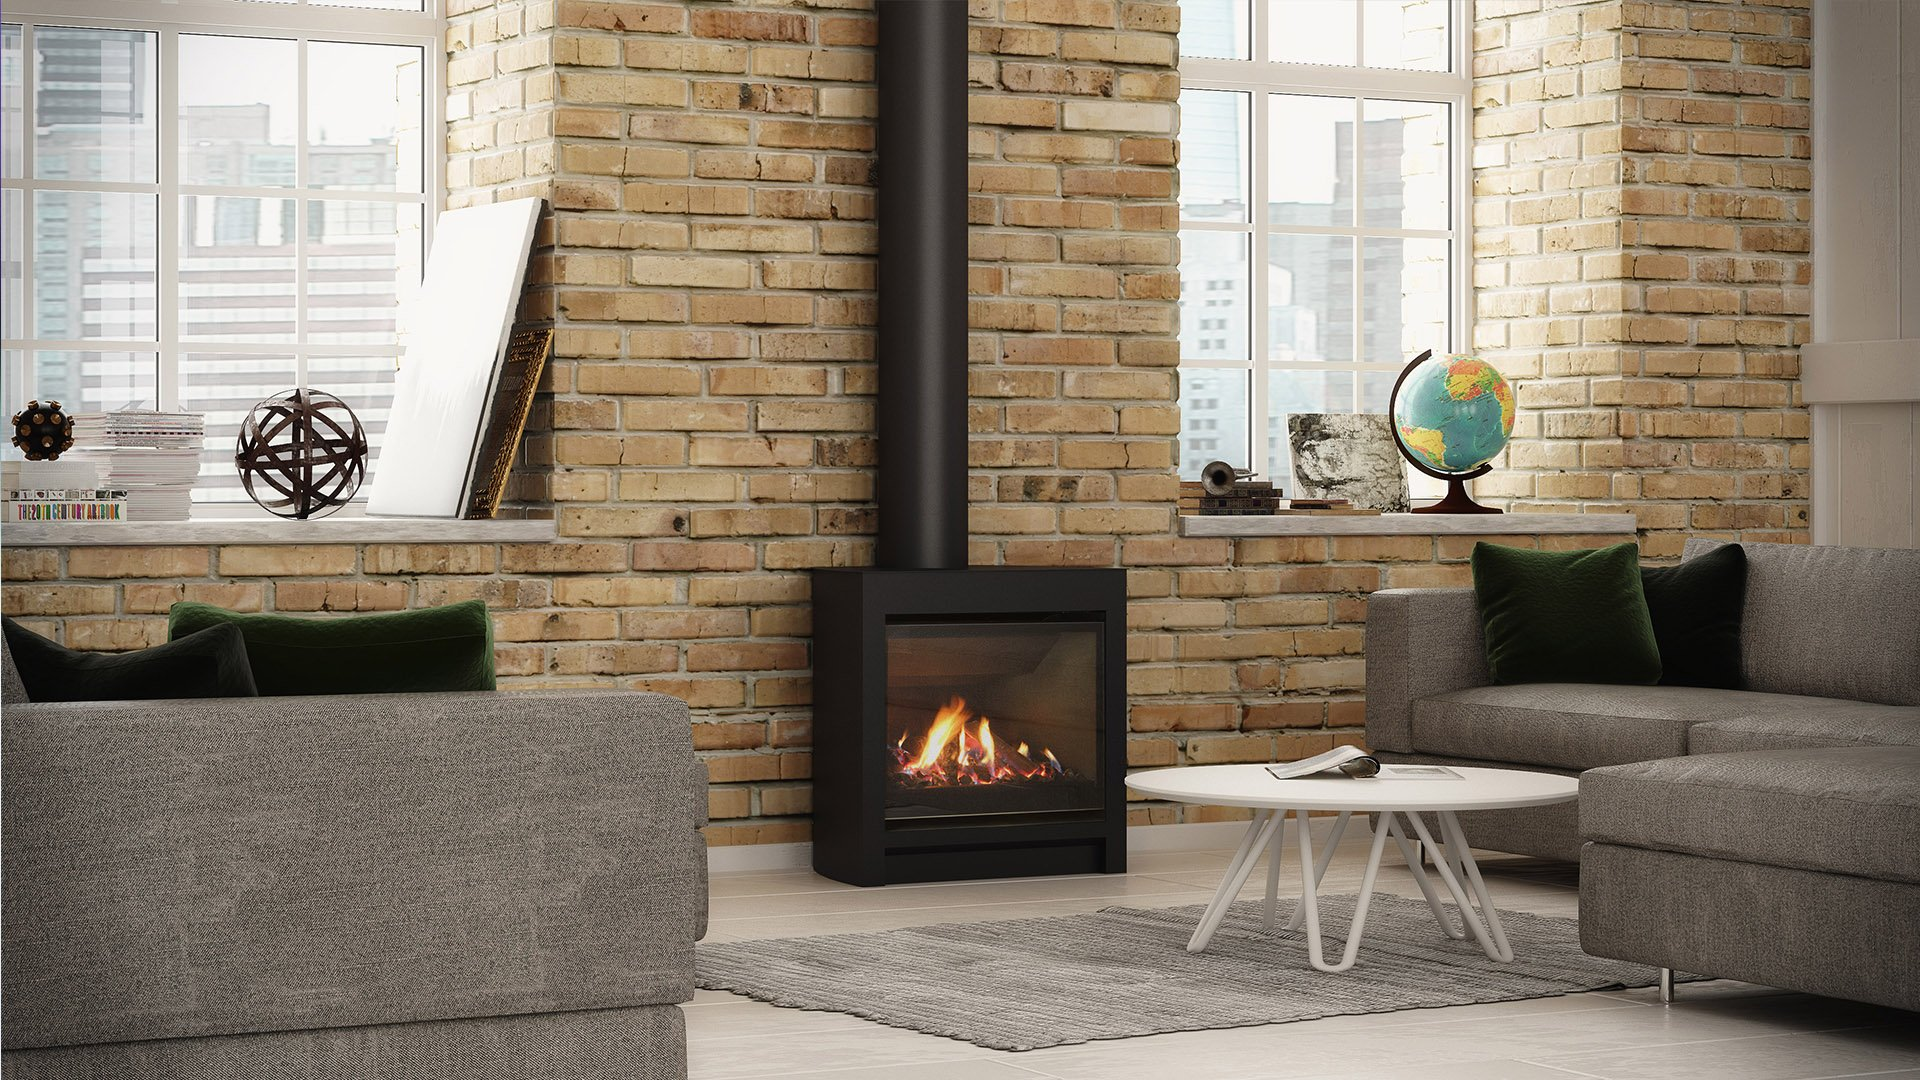 Introducing Escea's DFS730 Freestanding Gas Fireplace